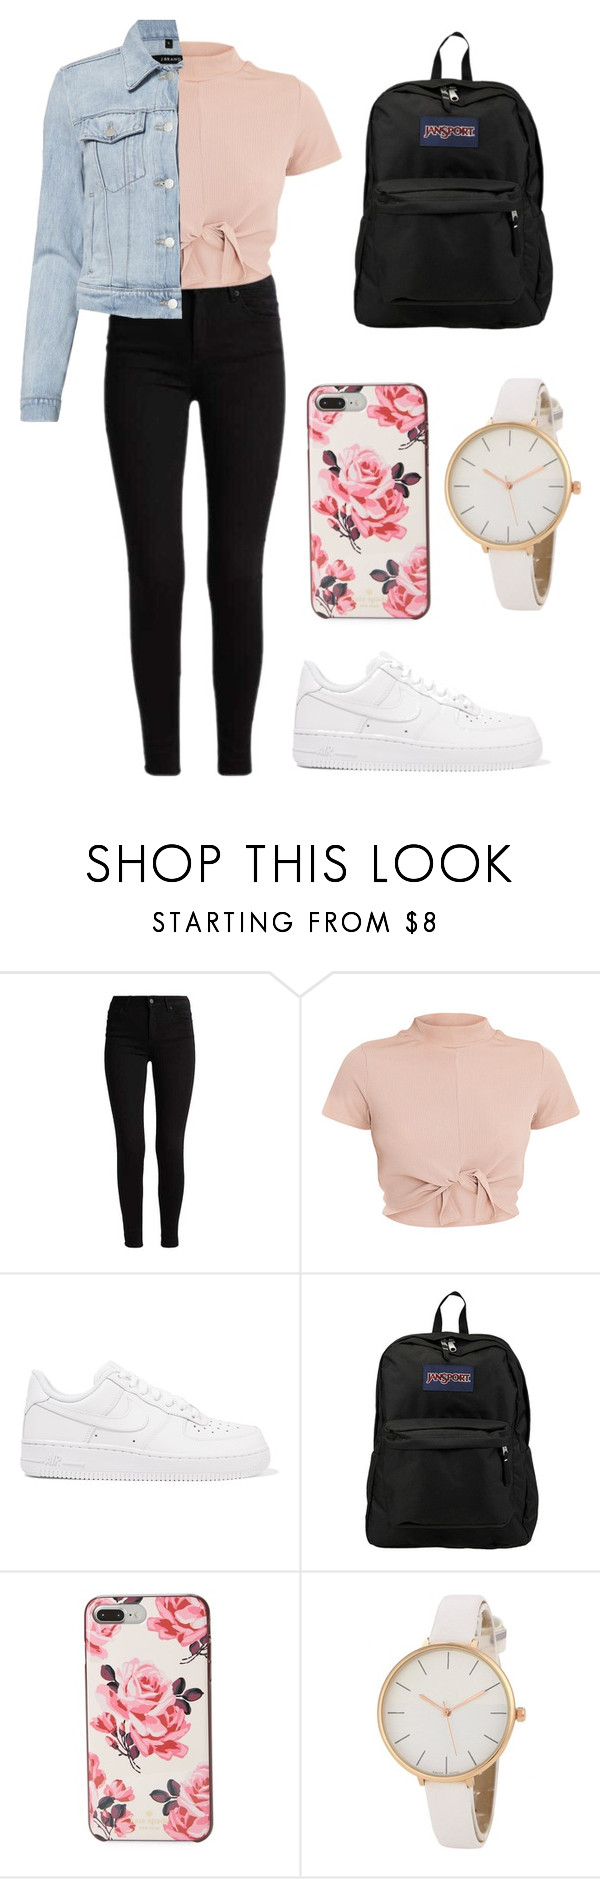 """""""First day of School"""" by bethany-franco on Polyvore featuring NIKE, JanSport, Kate Spade, J Brand, school, Pink, fashionable and dresscode"""